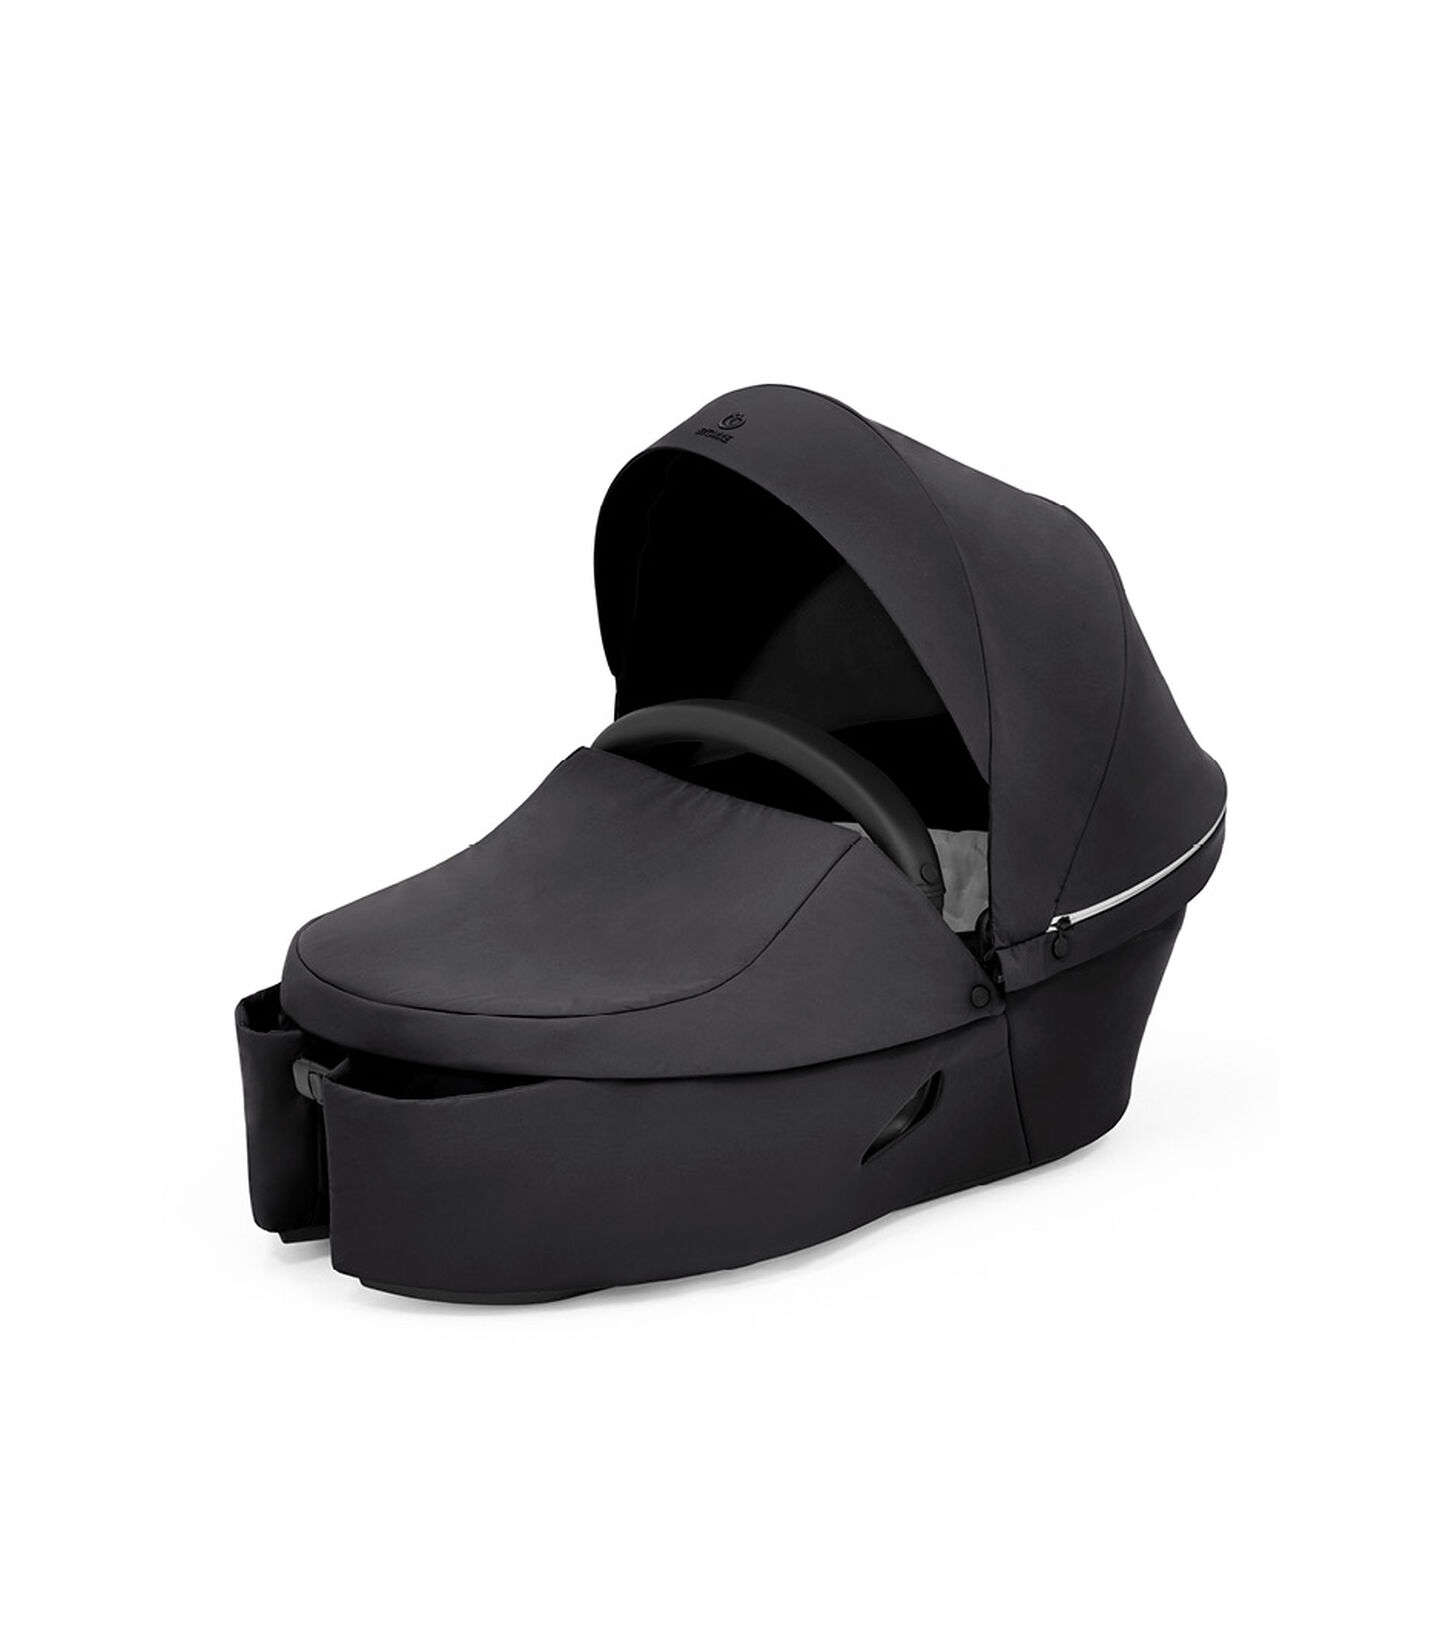 Stokke® Xplory® X Carry Cot Rich Black, Rich Black, mainview view 2